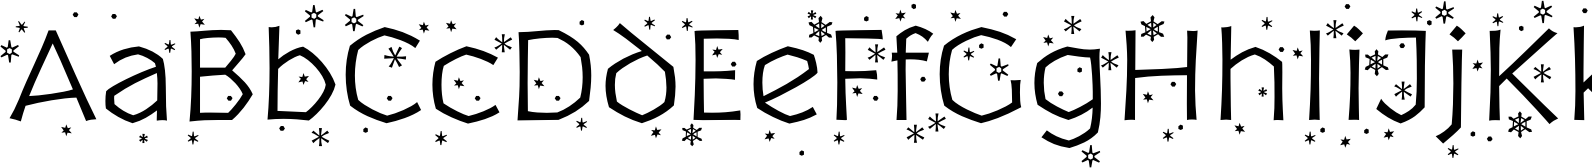 P22 Yule Light Flurries Font